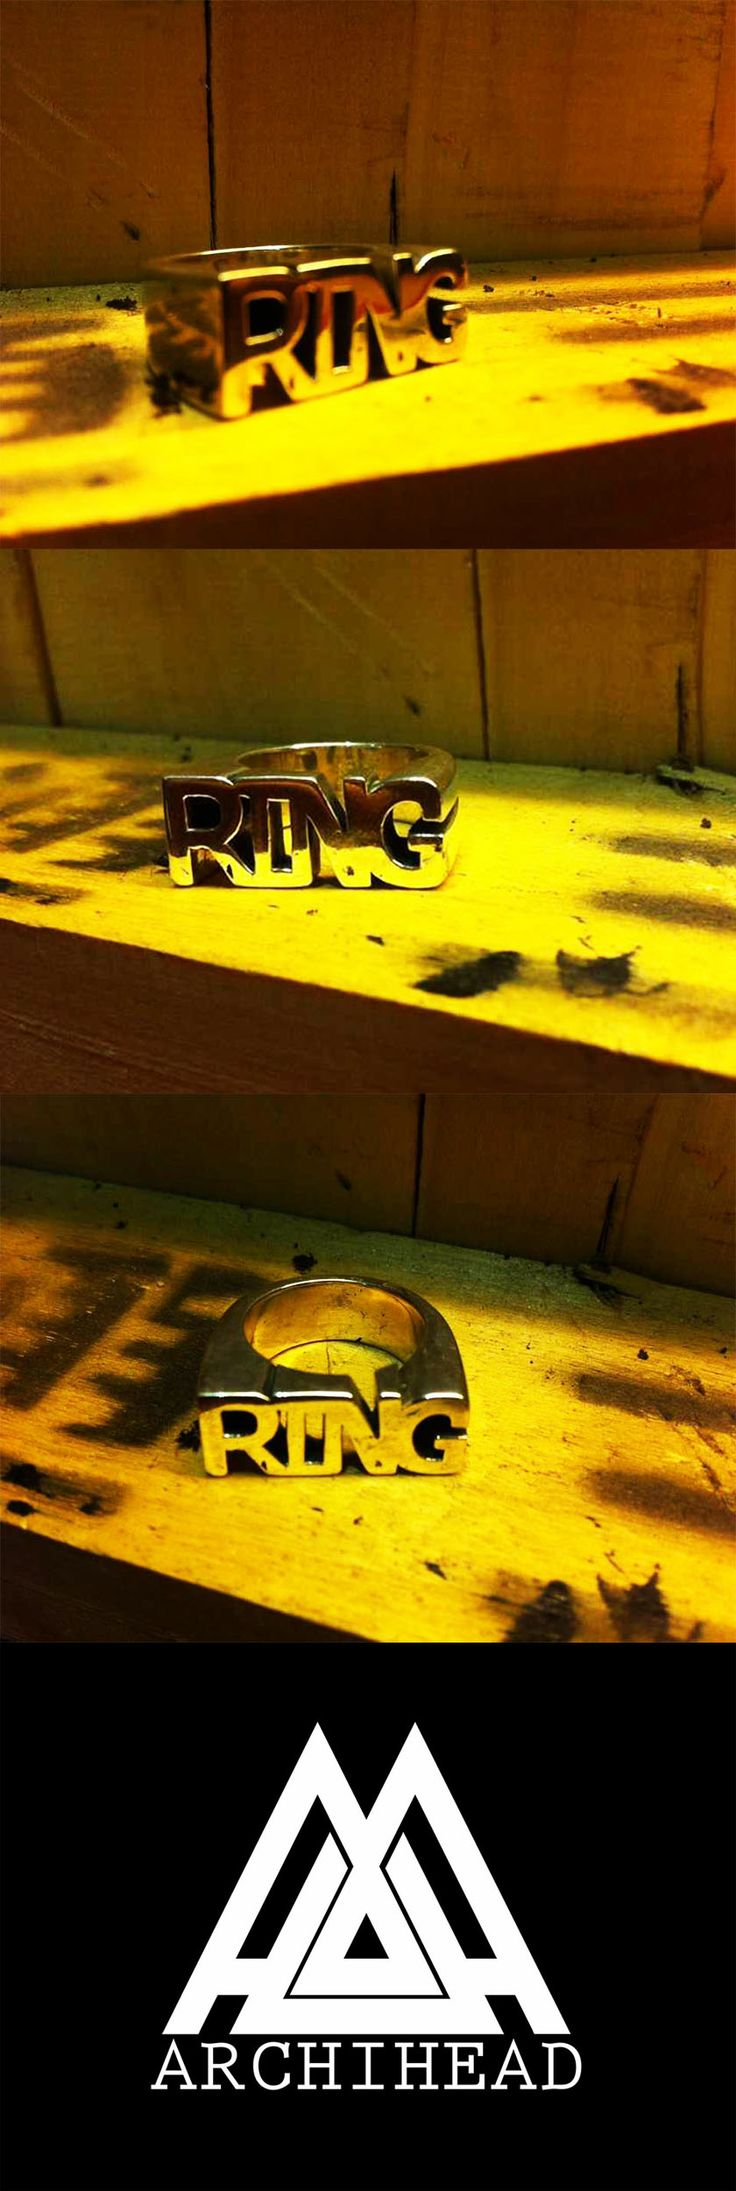 ARCHIHEAD Rings (rings) Archiheadproject@gmail.com